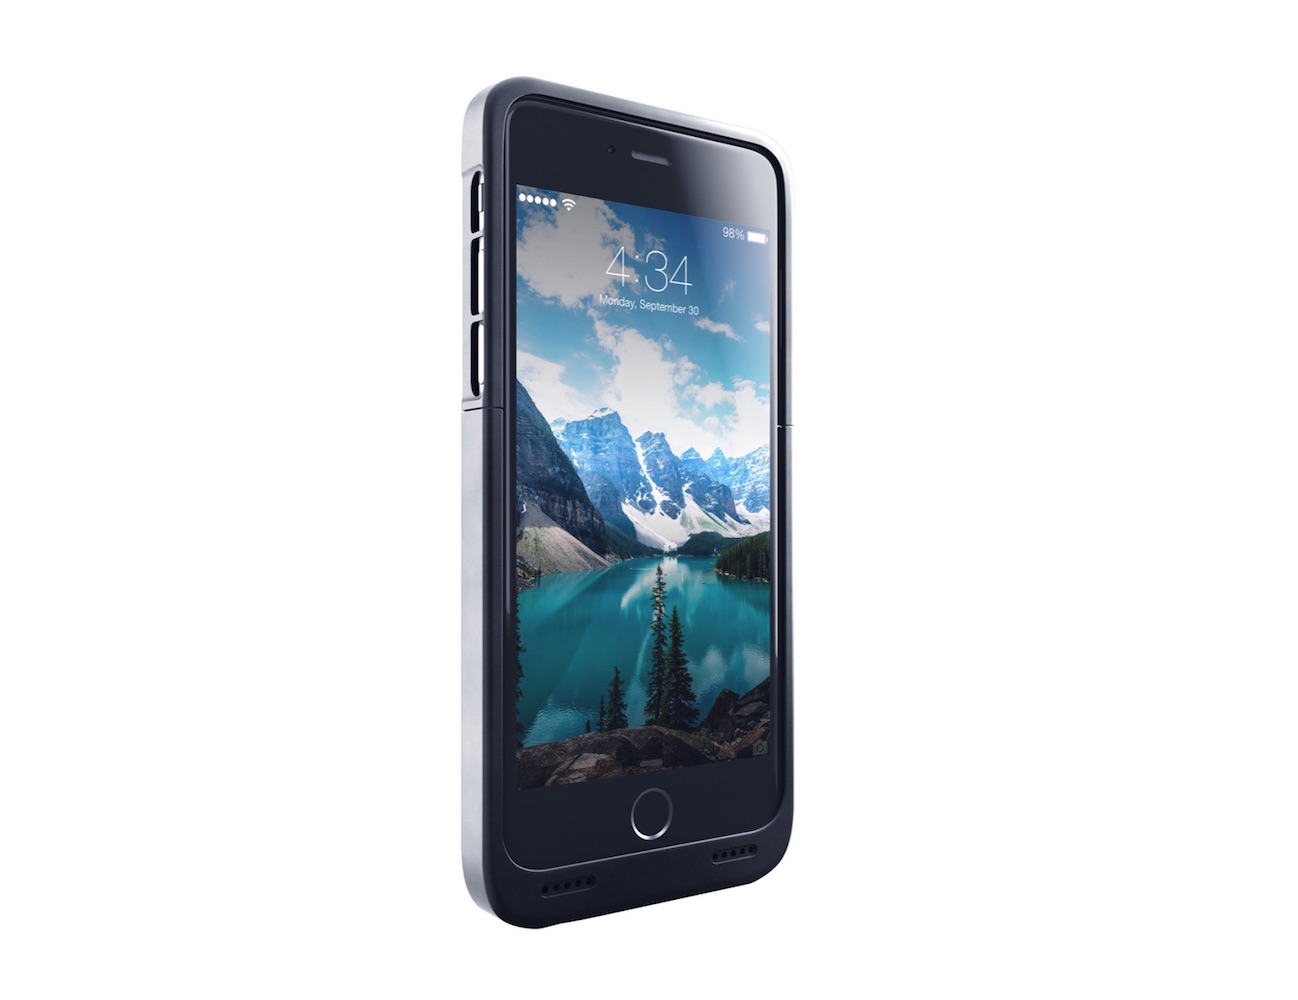 The Best iPhone 6 Battery Case